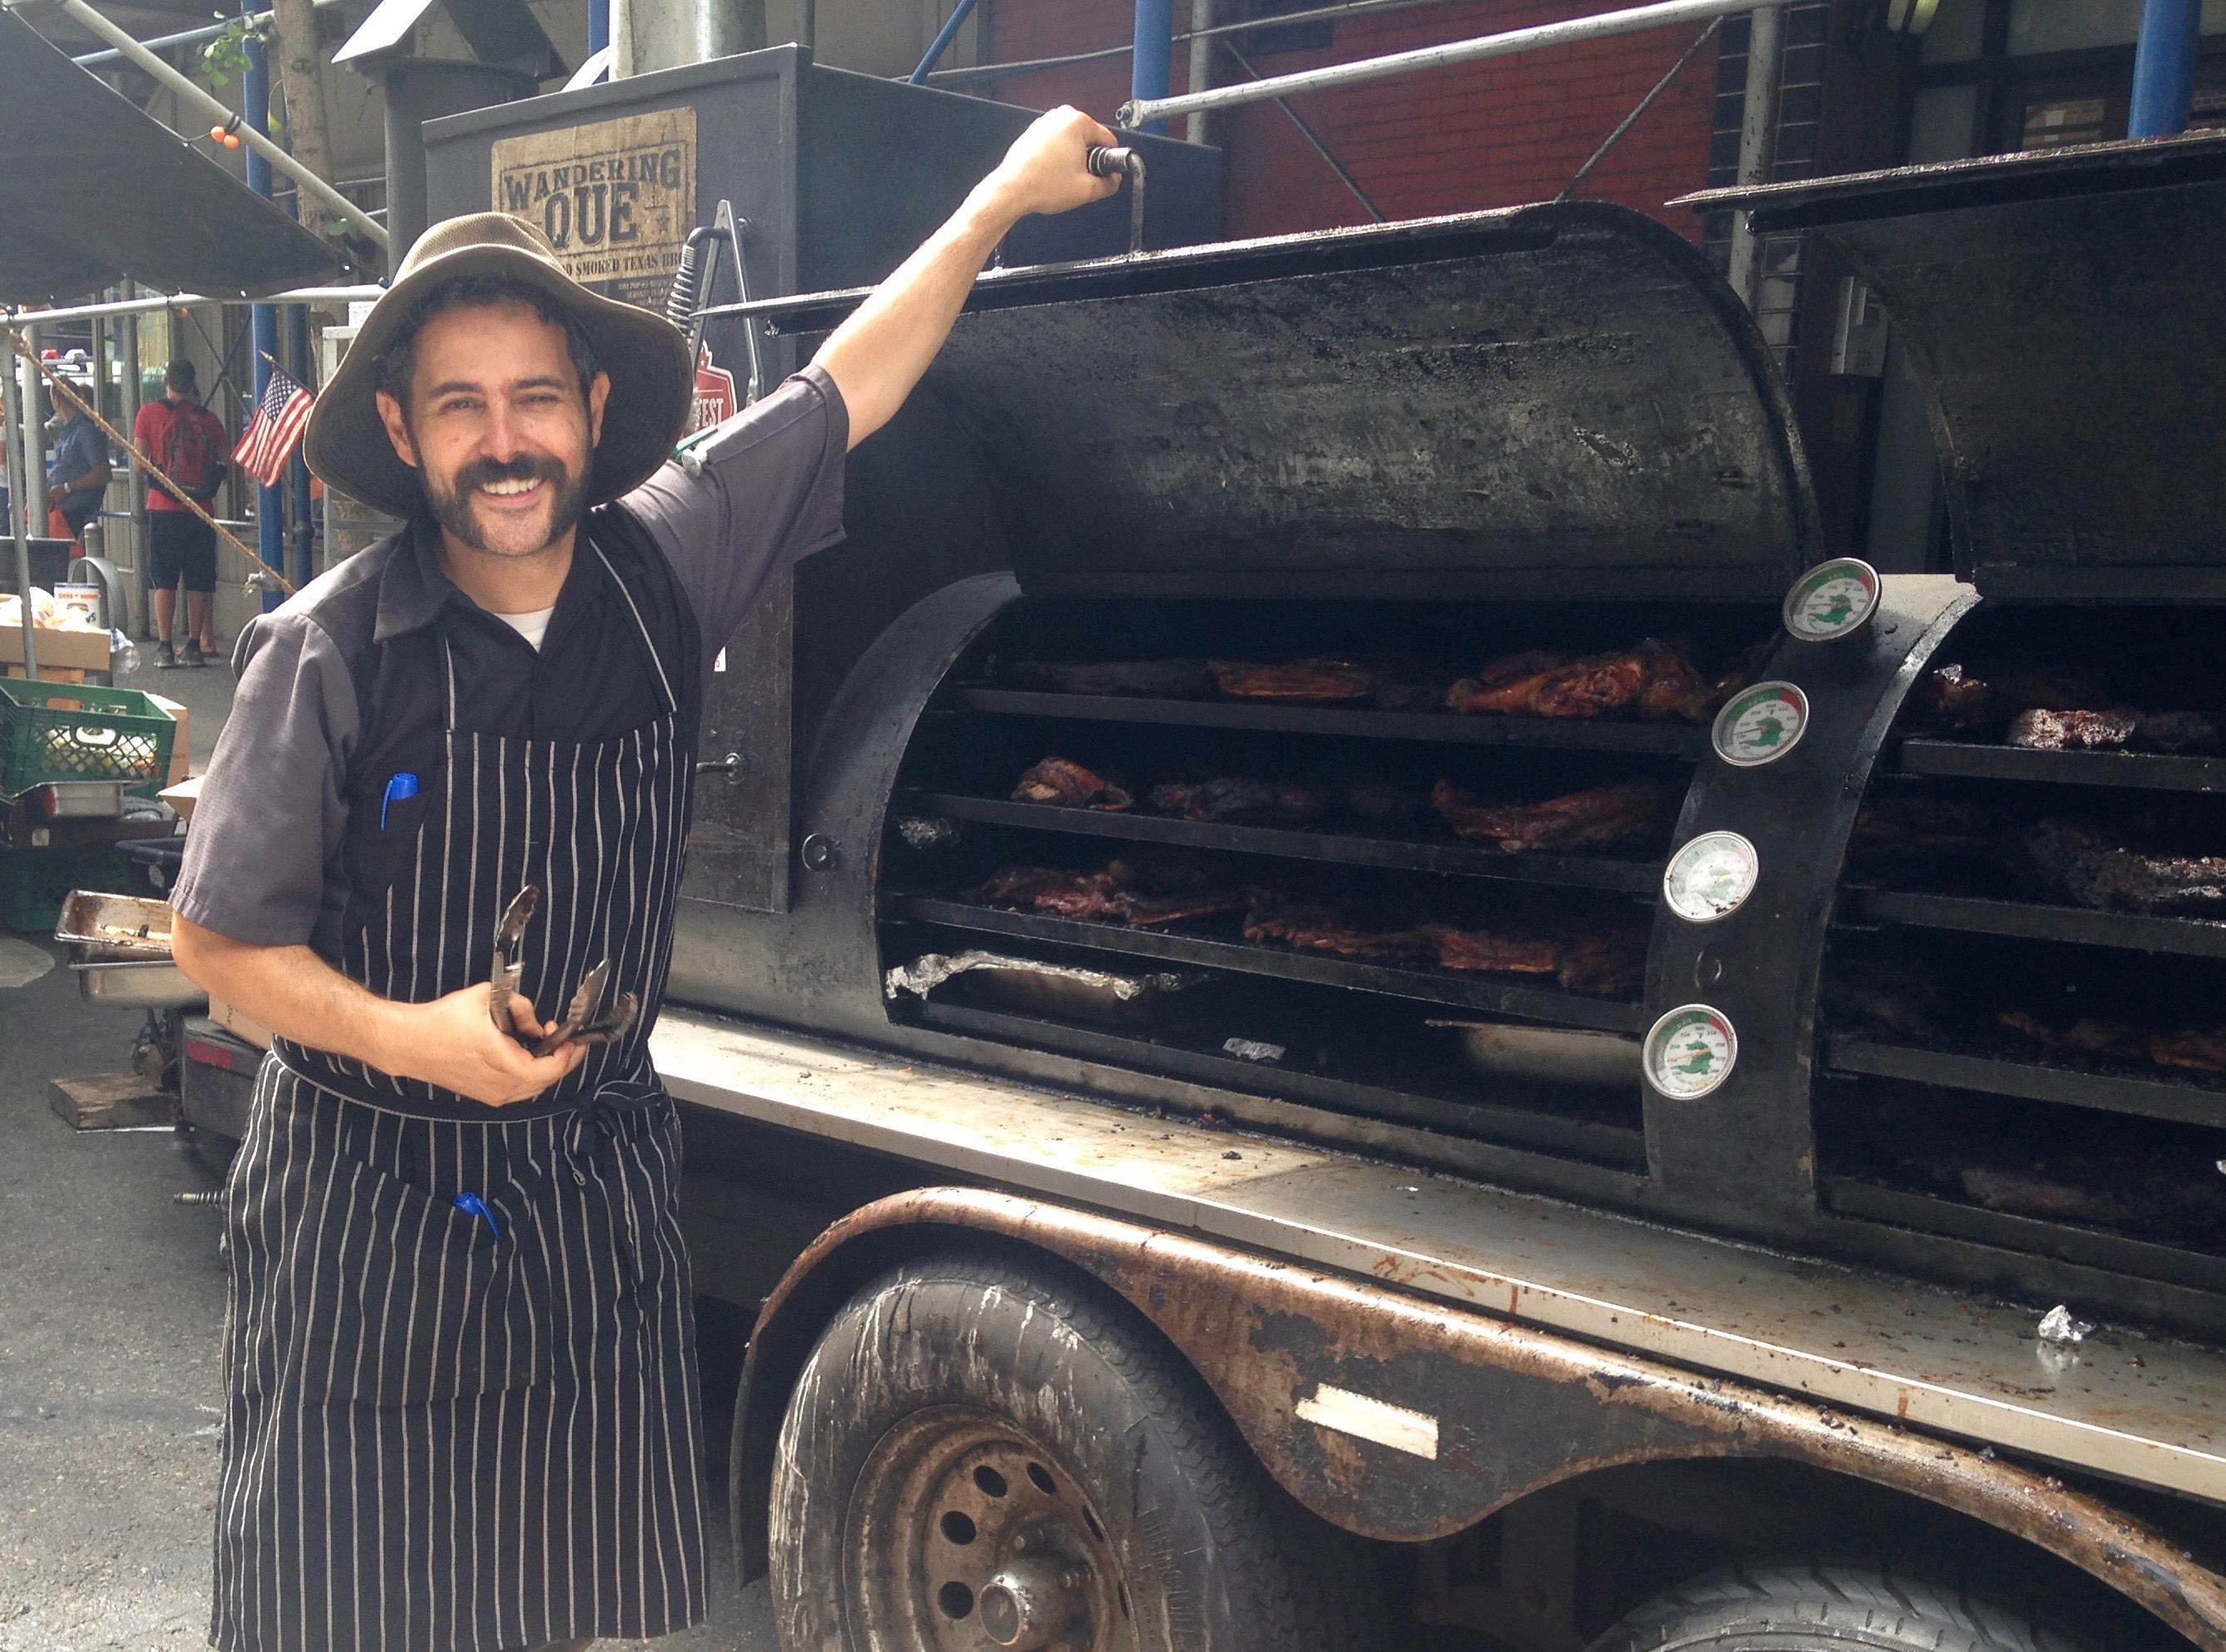 Ari White poses in front of his smoker at a street fair in Manhattan.